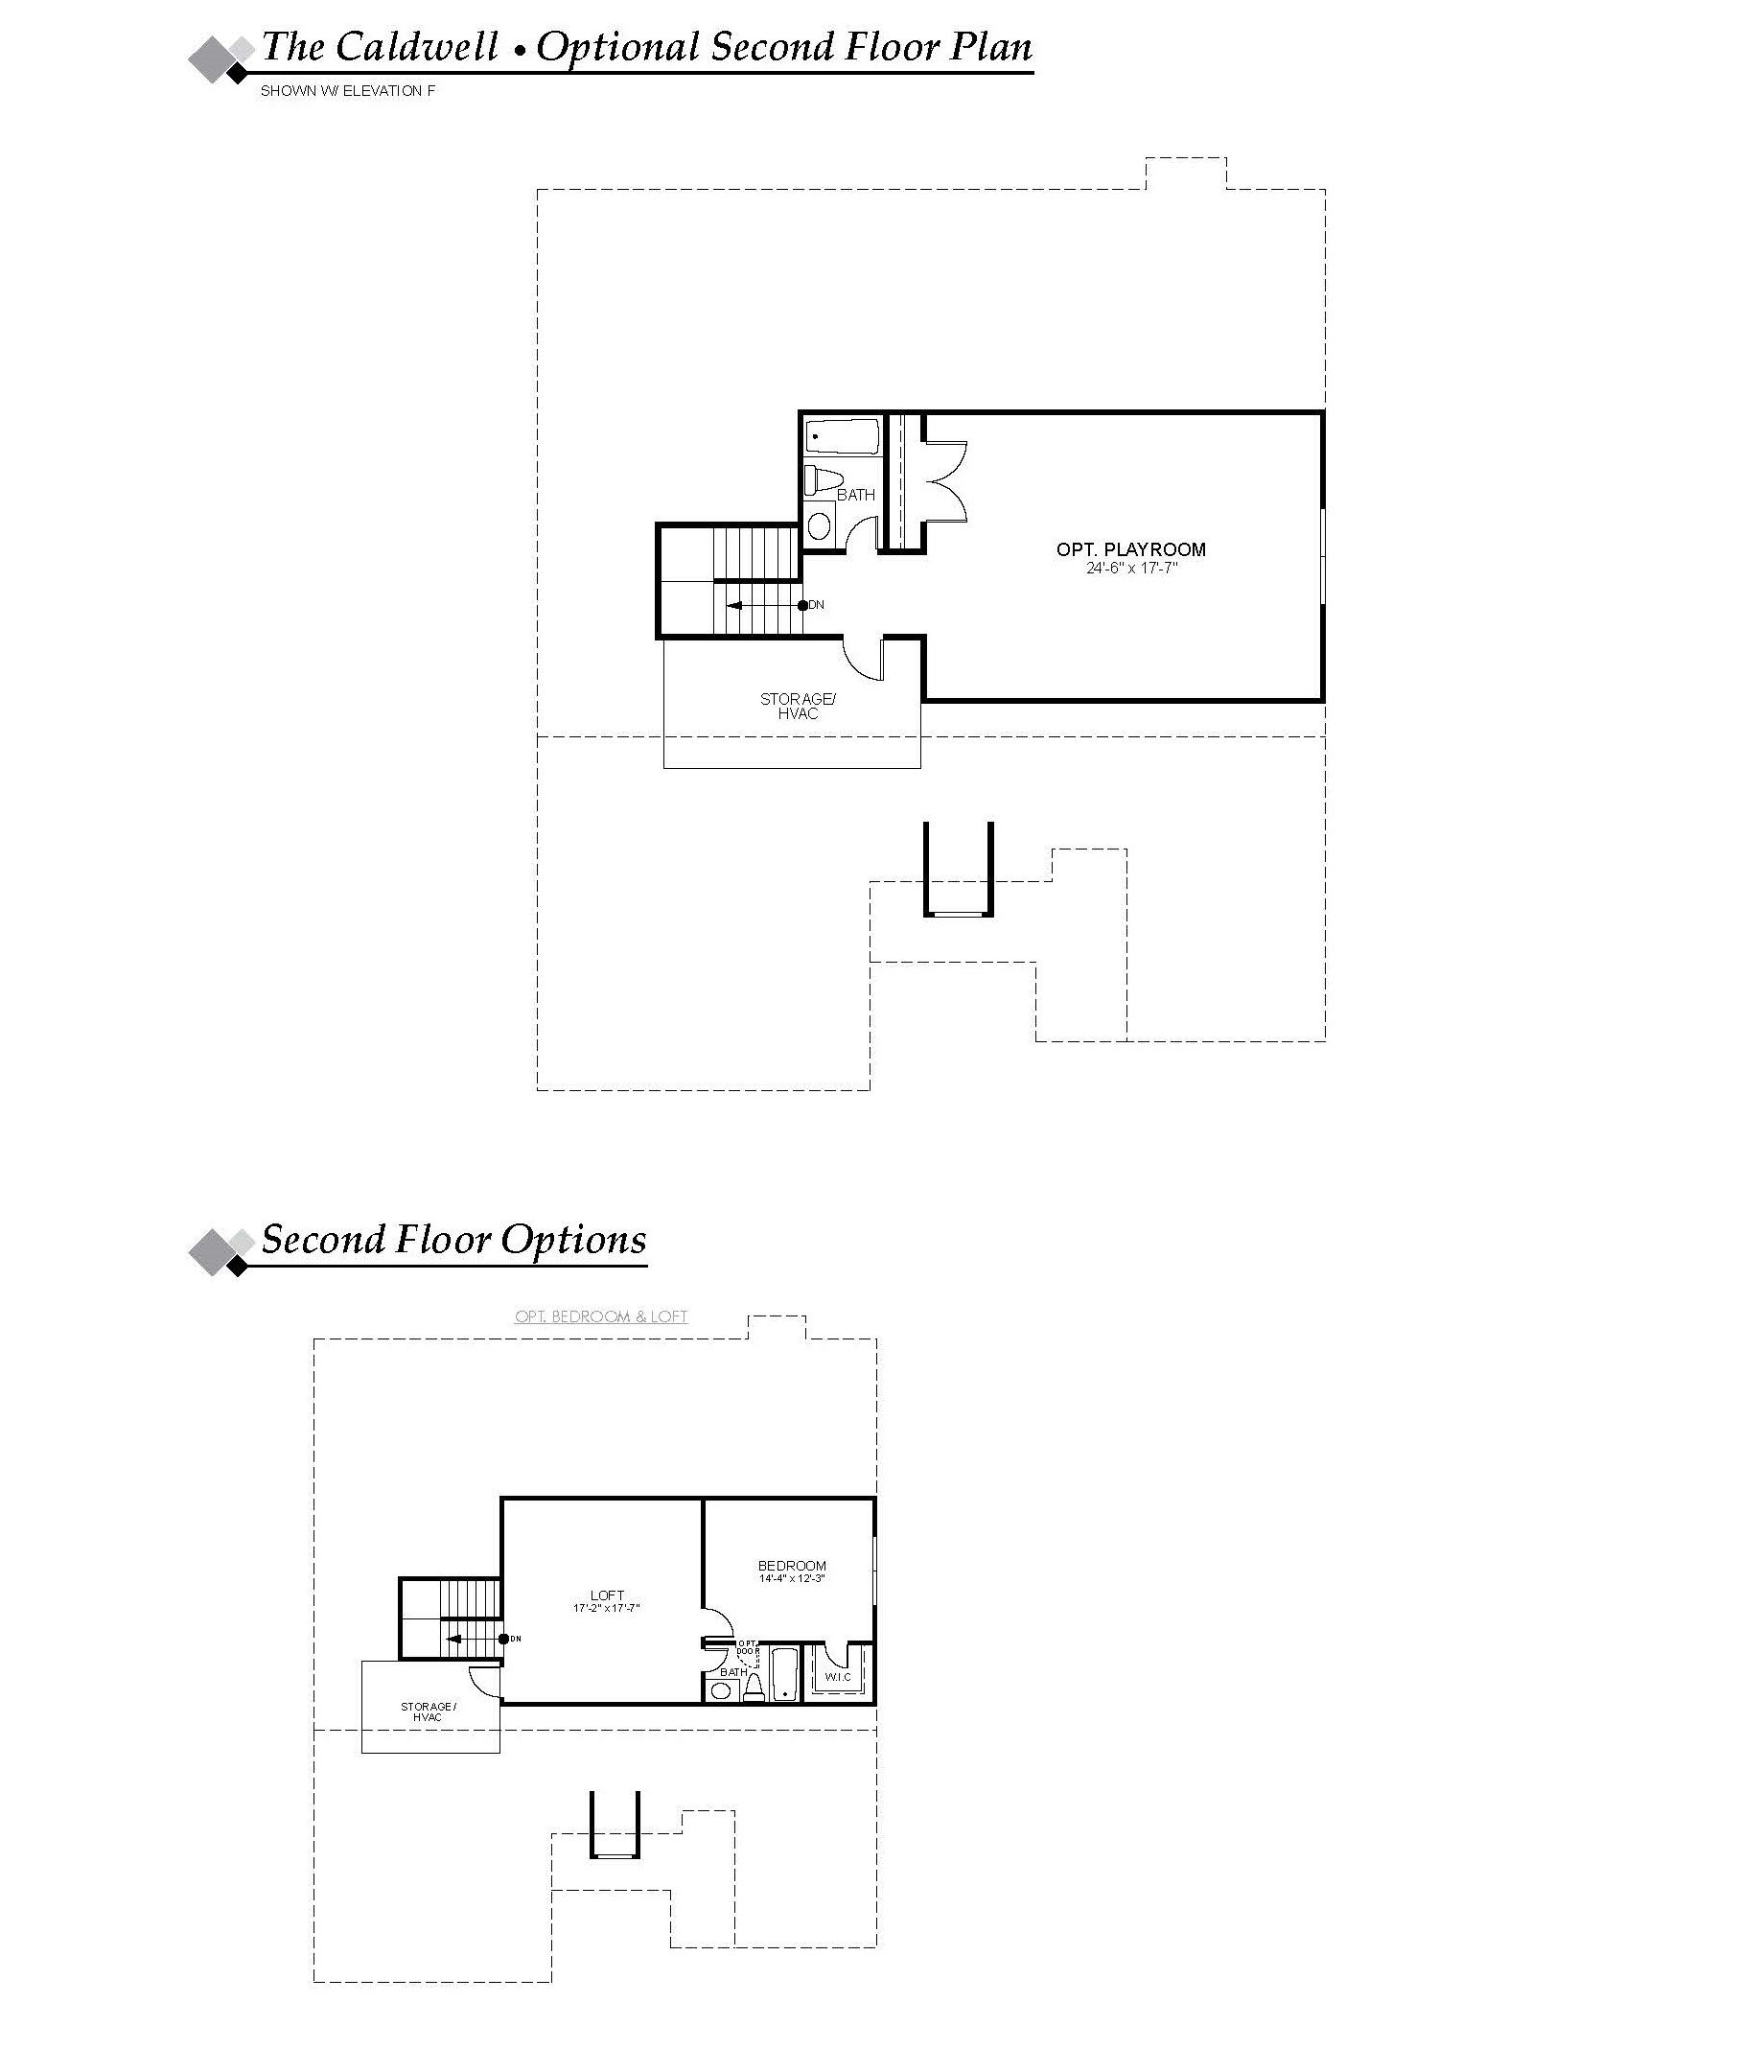 New Caldwell Floor Plan In Indian Trail Nc Eastwood Homes